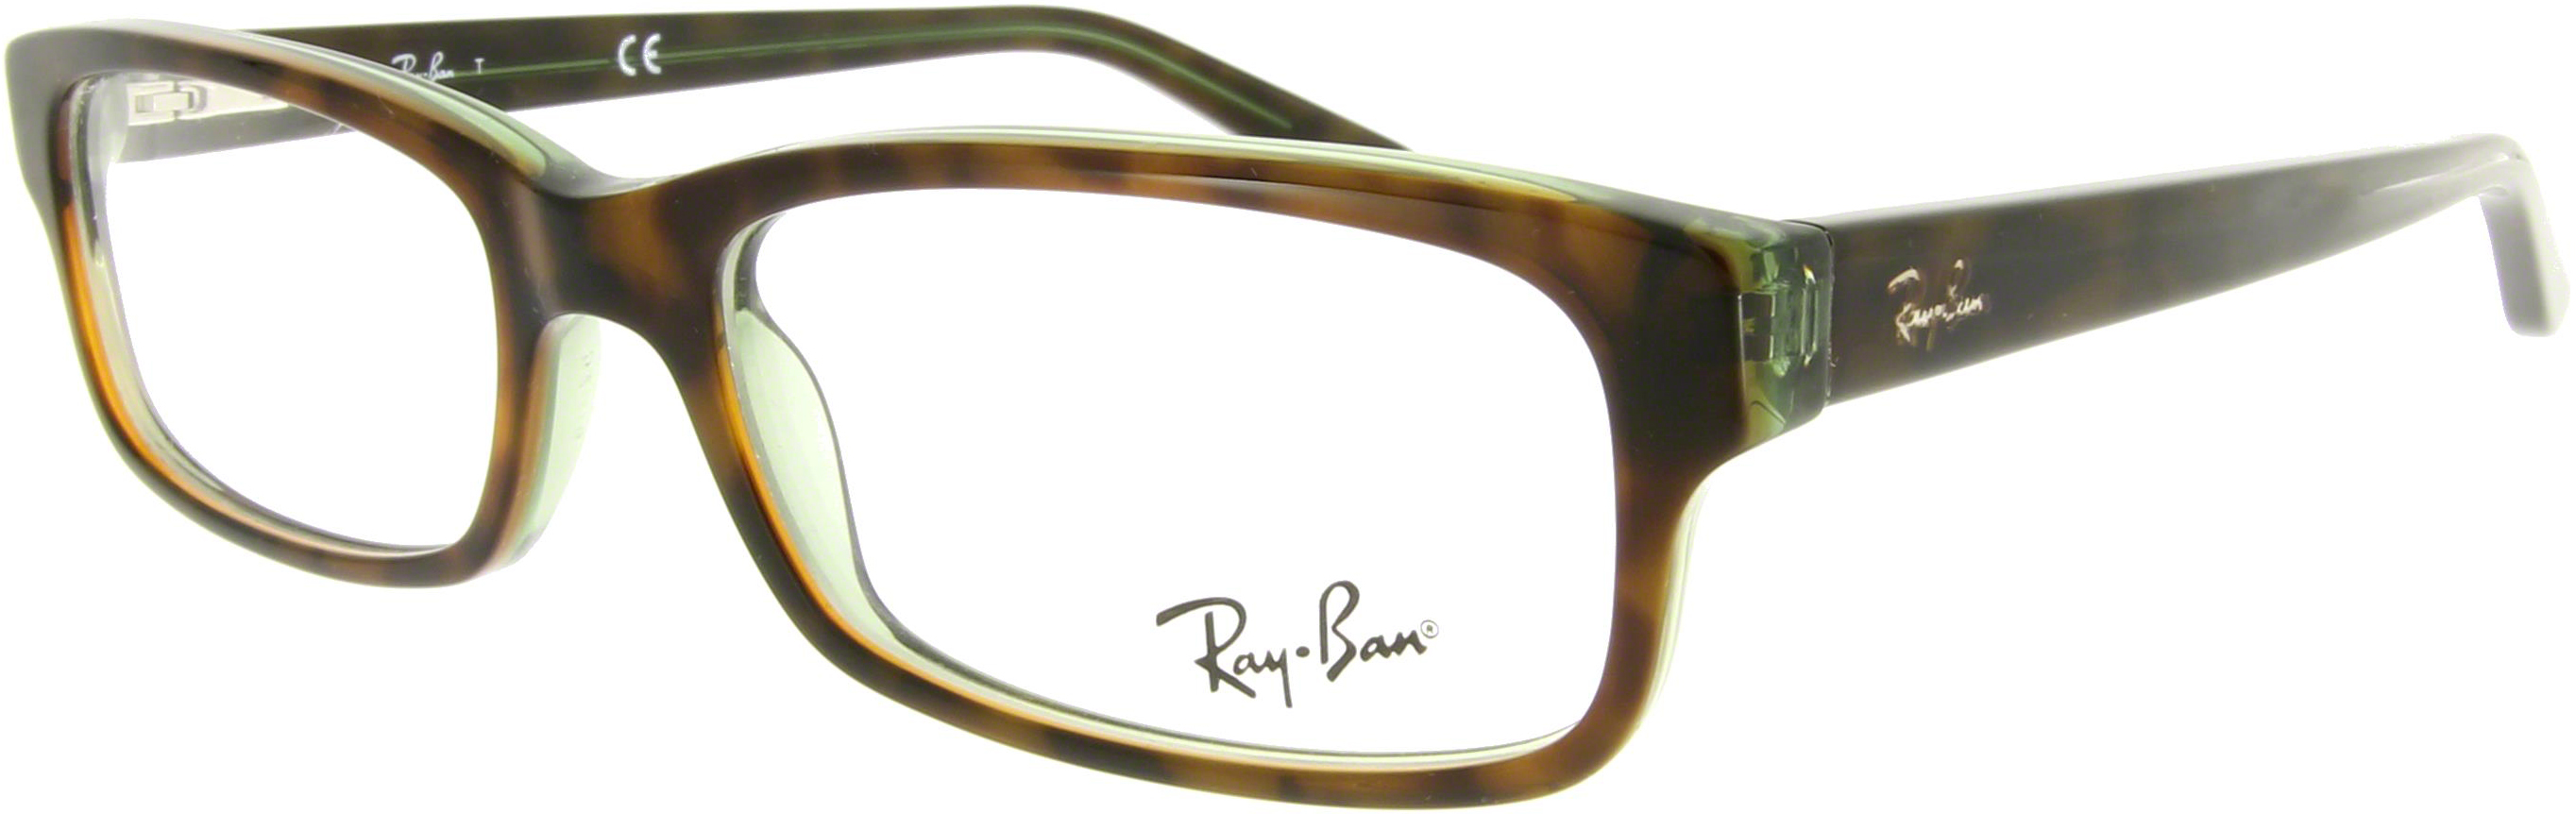 a9ff146338 Ray Ban Brille Rb 7017 « Heritage Malta